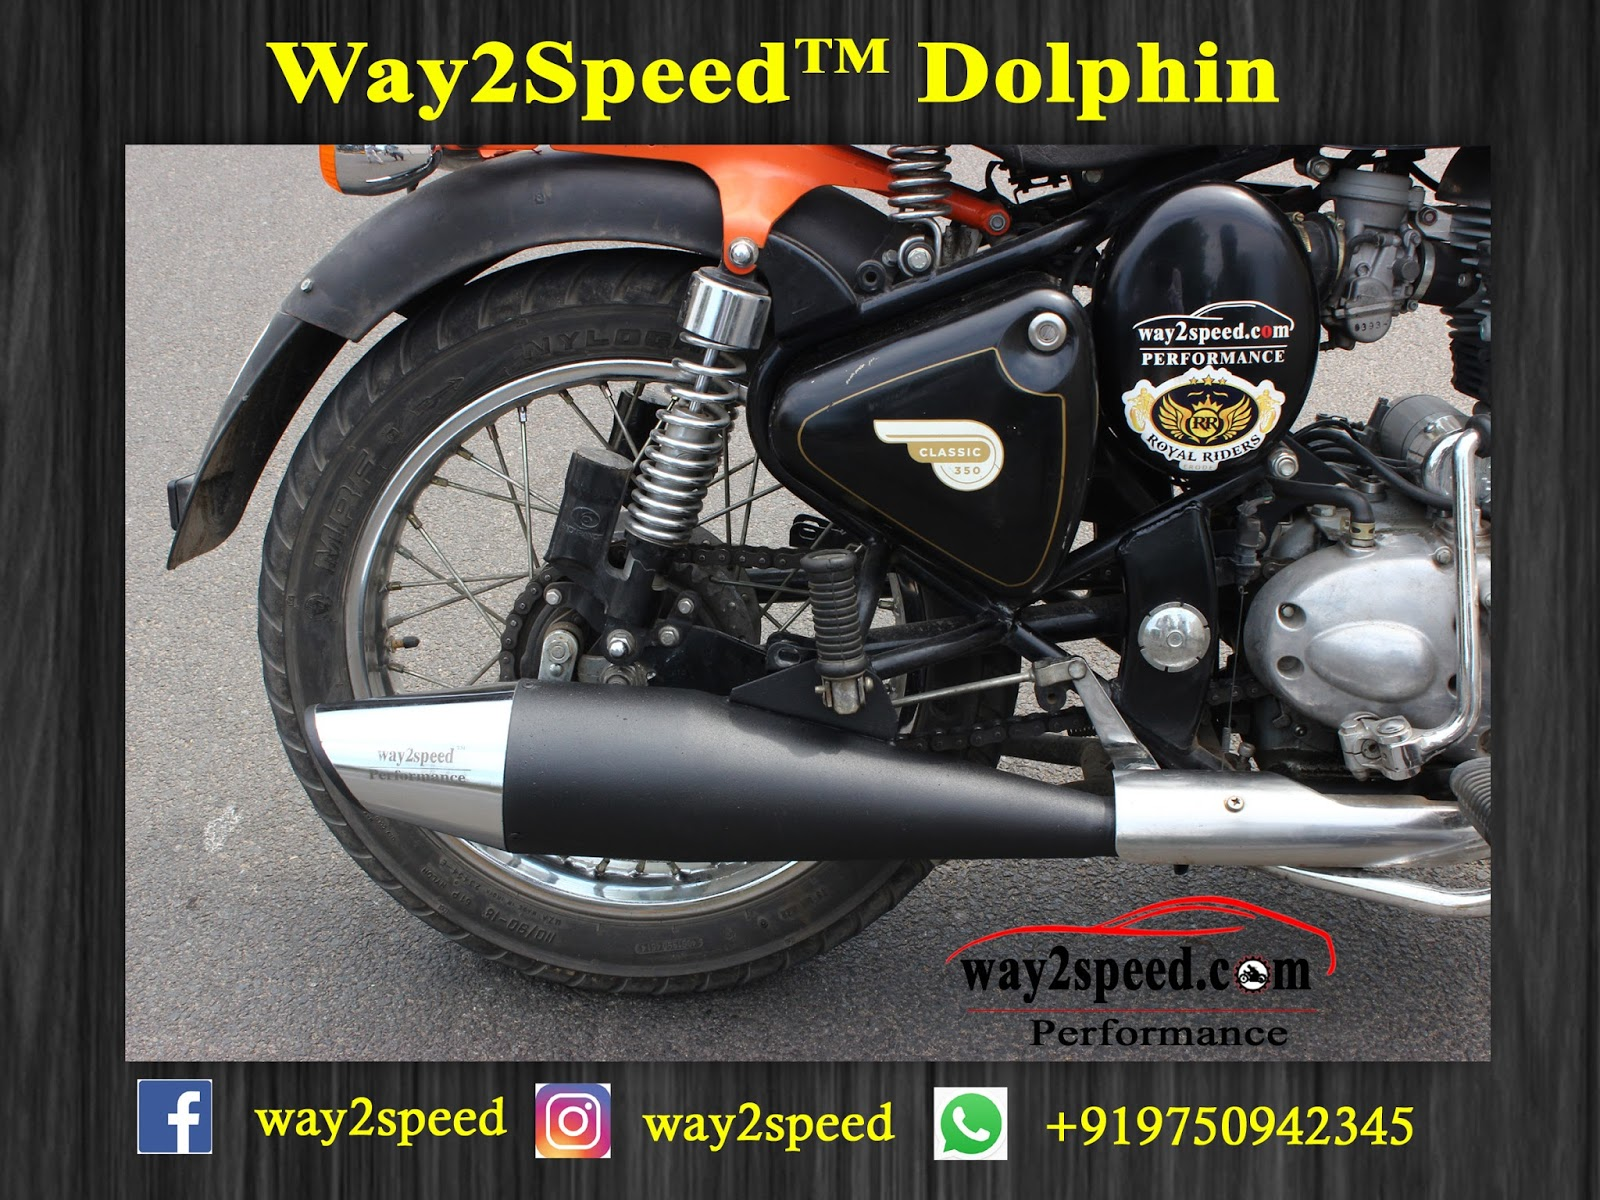 Royal Enfield Dolphin Silencer | Way2speed Performance | Dolphin silencer review | Dolphin silencer for thunderbird 350 | shark silencer royal enfield | Dolphin silencer price | Dolphin silencer sound | Dolphin silencer black | Dolphin exhaust review